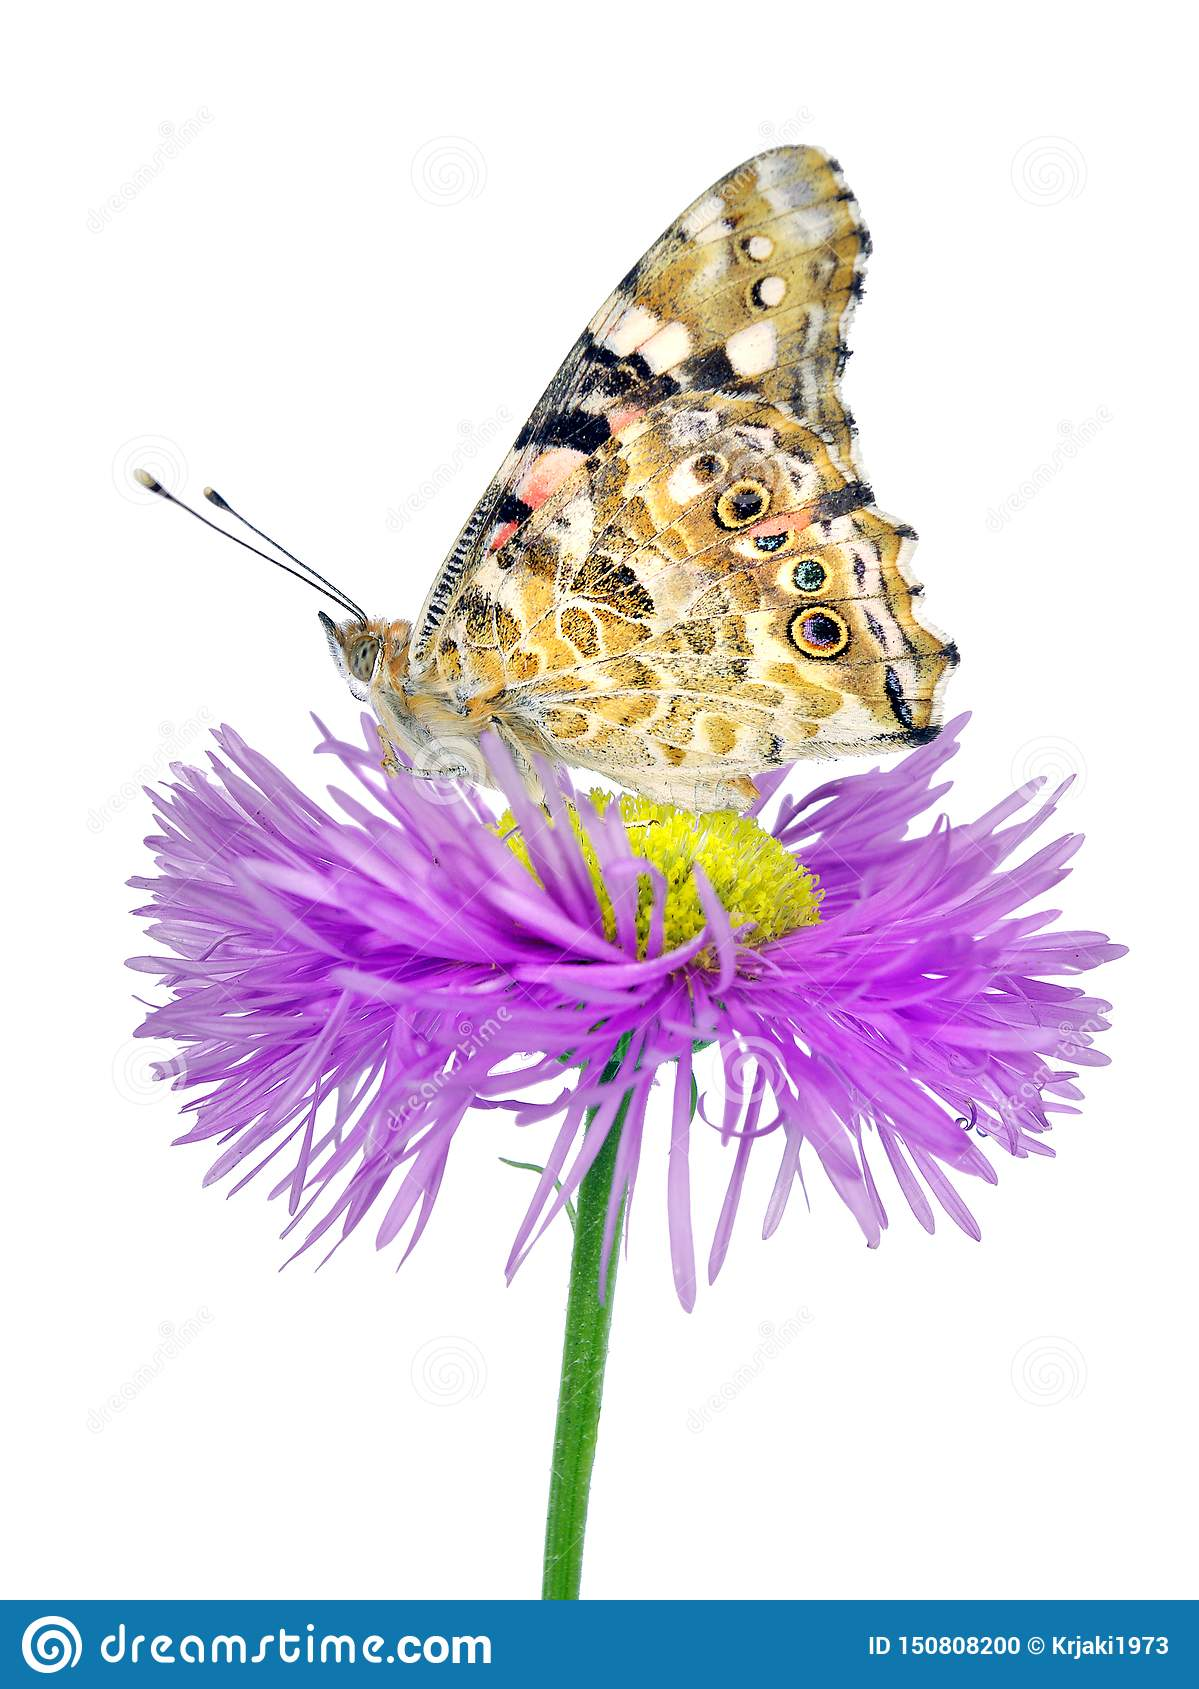 Butterfly on a flower. beautiful butterfly painted lady on flower isolated on a white.